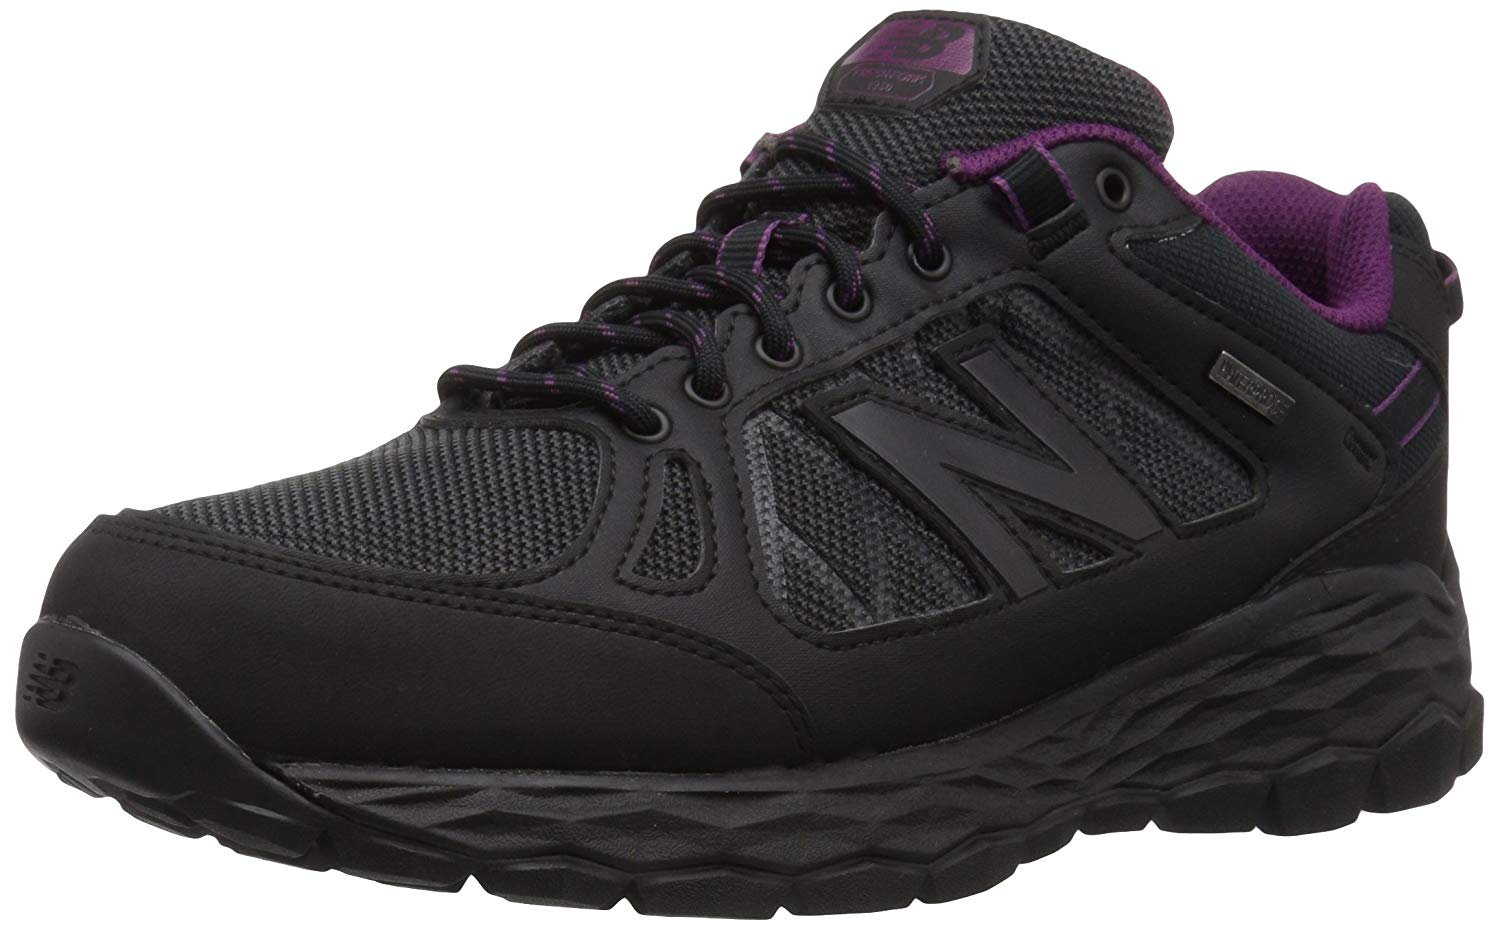 aed7db0c6bb24 Details about New Balance Womens 1350W Low Top Lace Up Running Sneaker